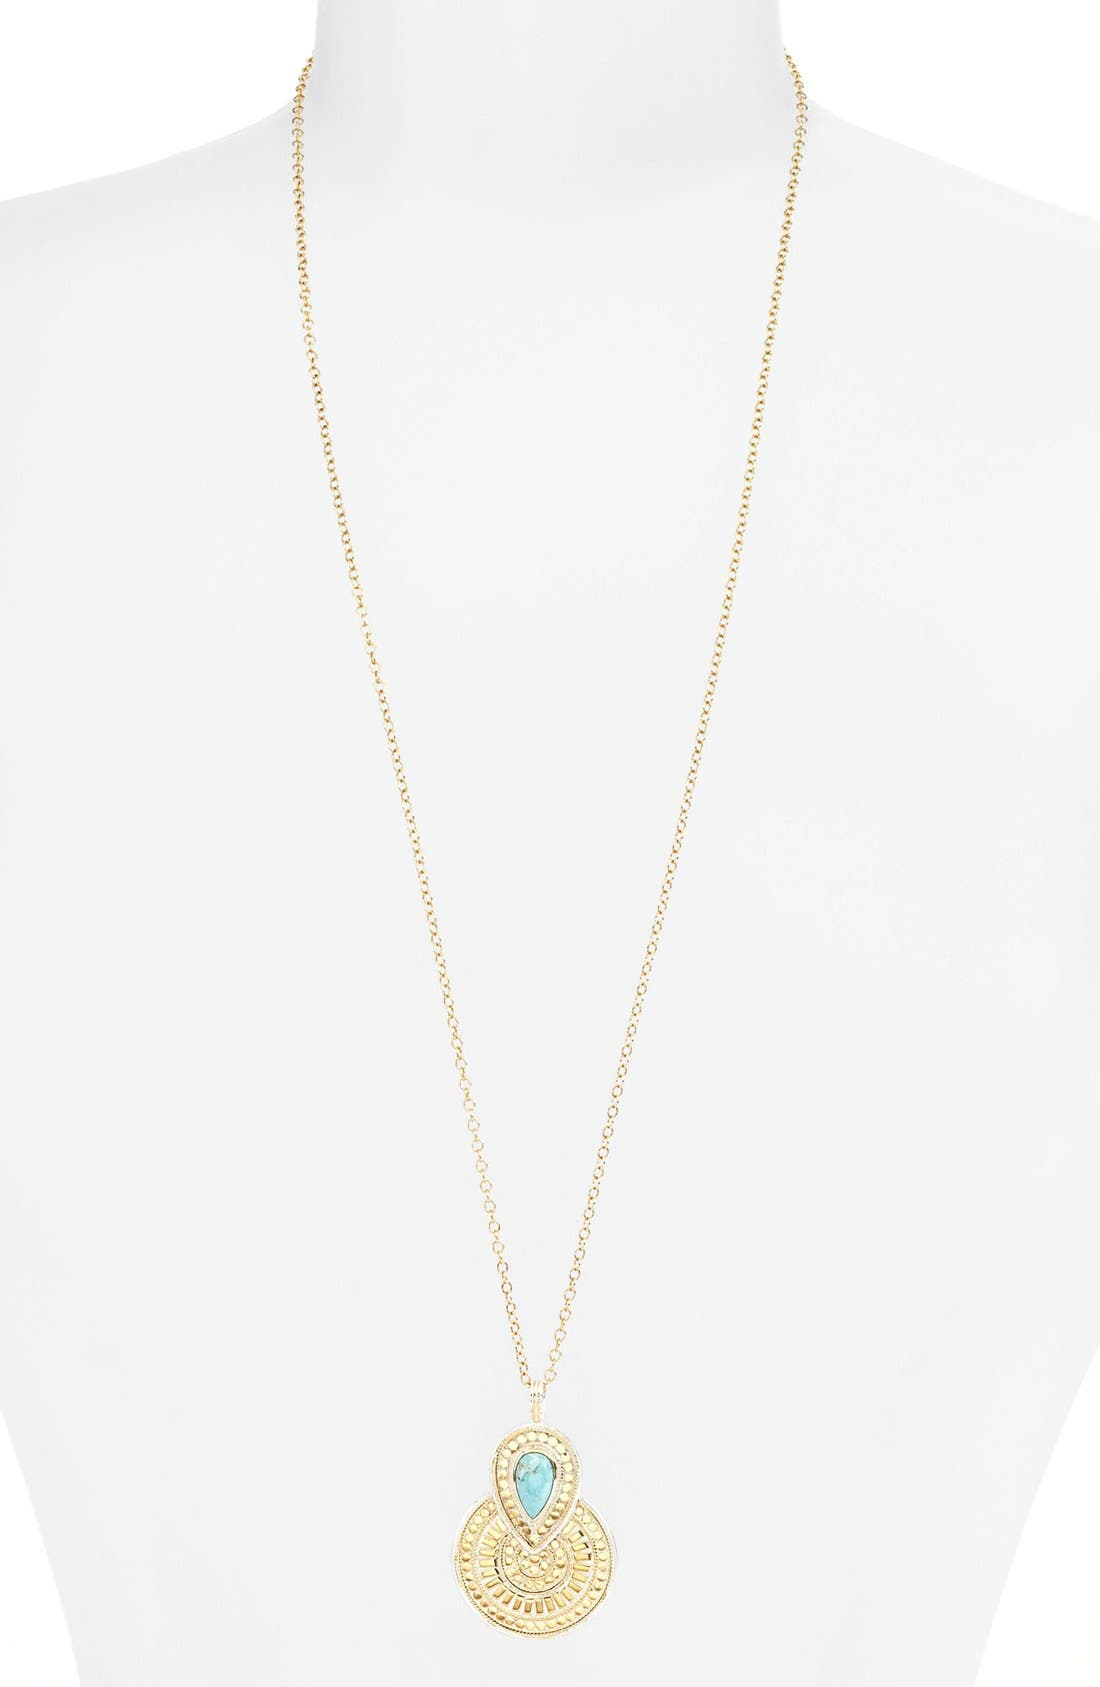 Alternate Image 1 Selected - Anna Beck 'Gili' Long Pendant Necklace